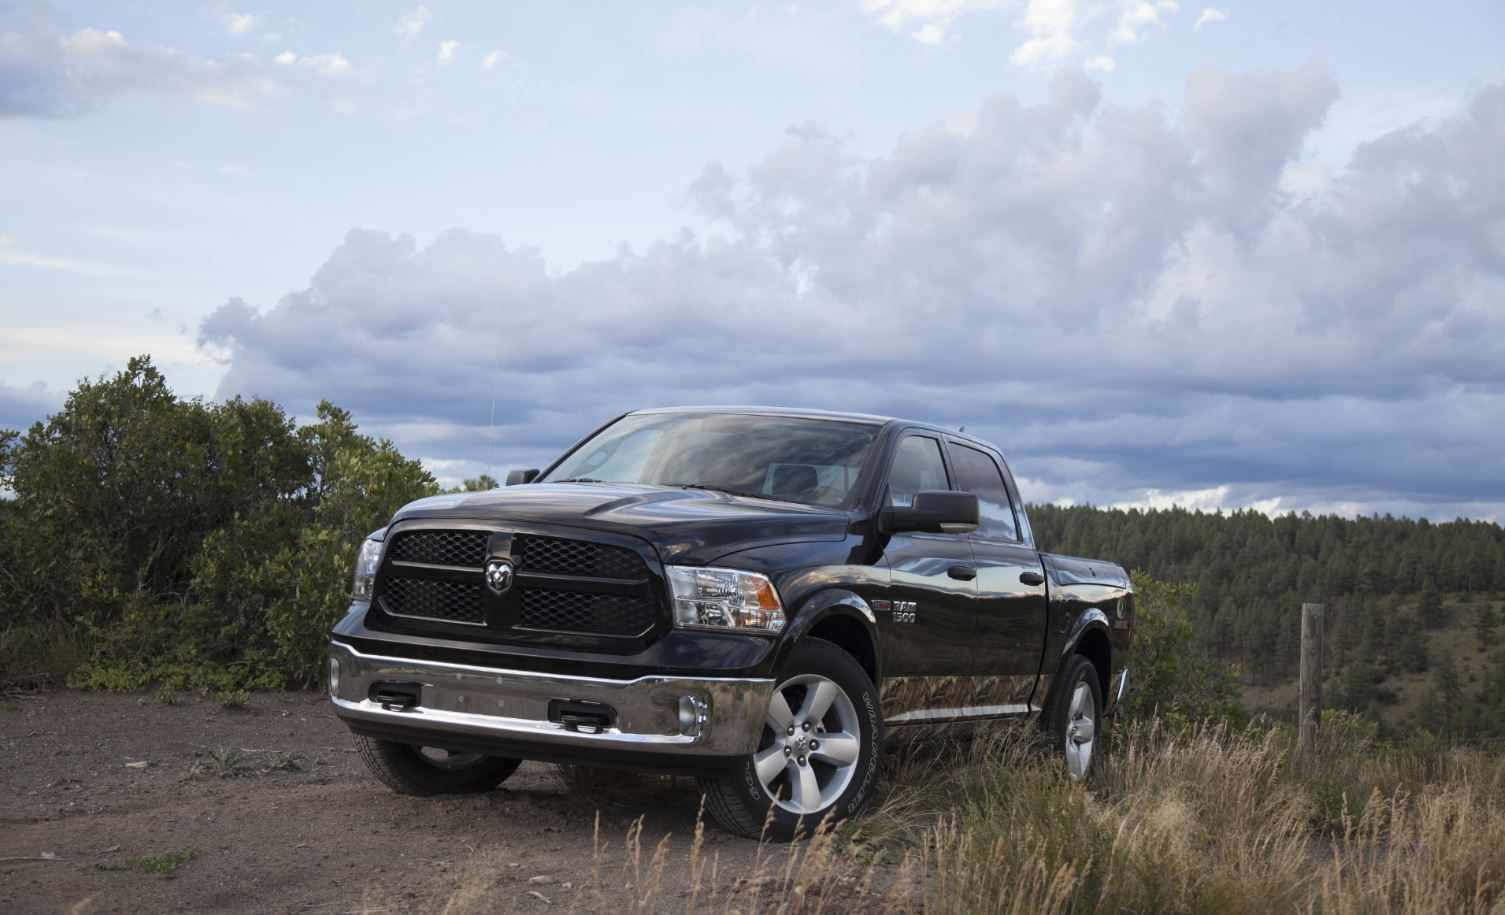 Oak Harbor Motors has a Great Selection of the Incredible Ram 1500 Pick-Up